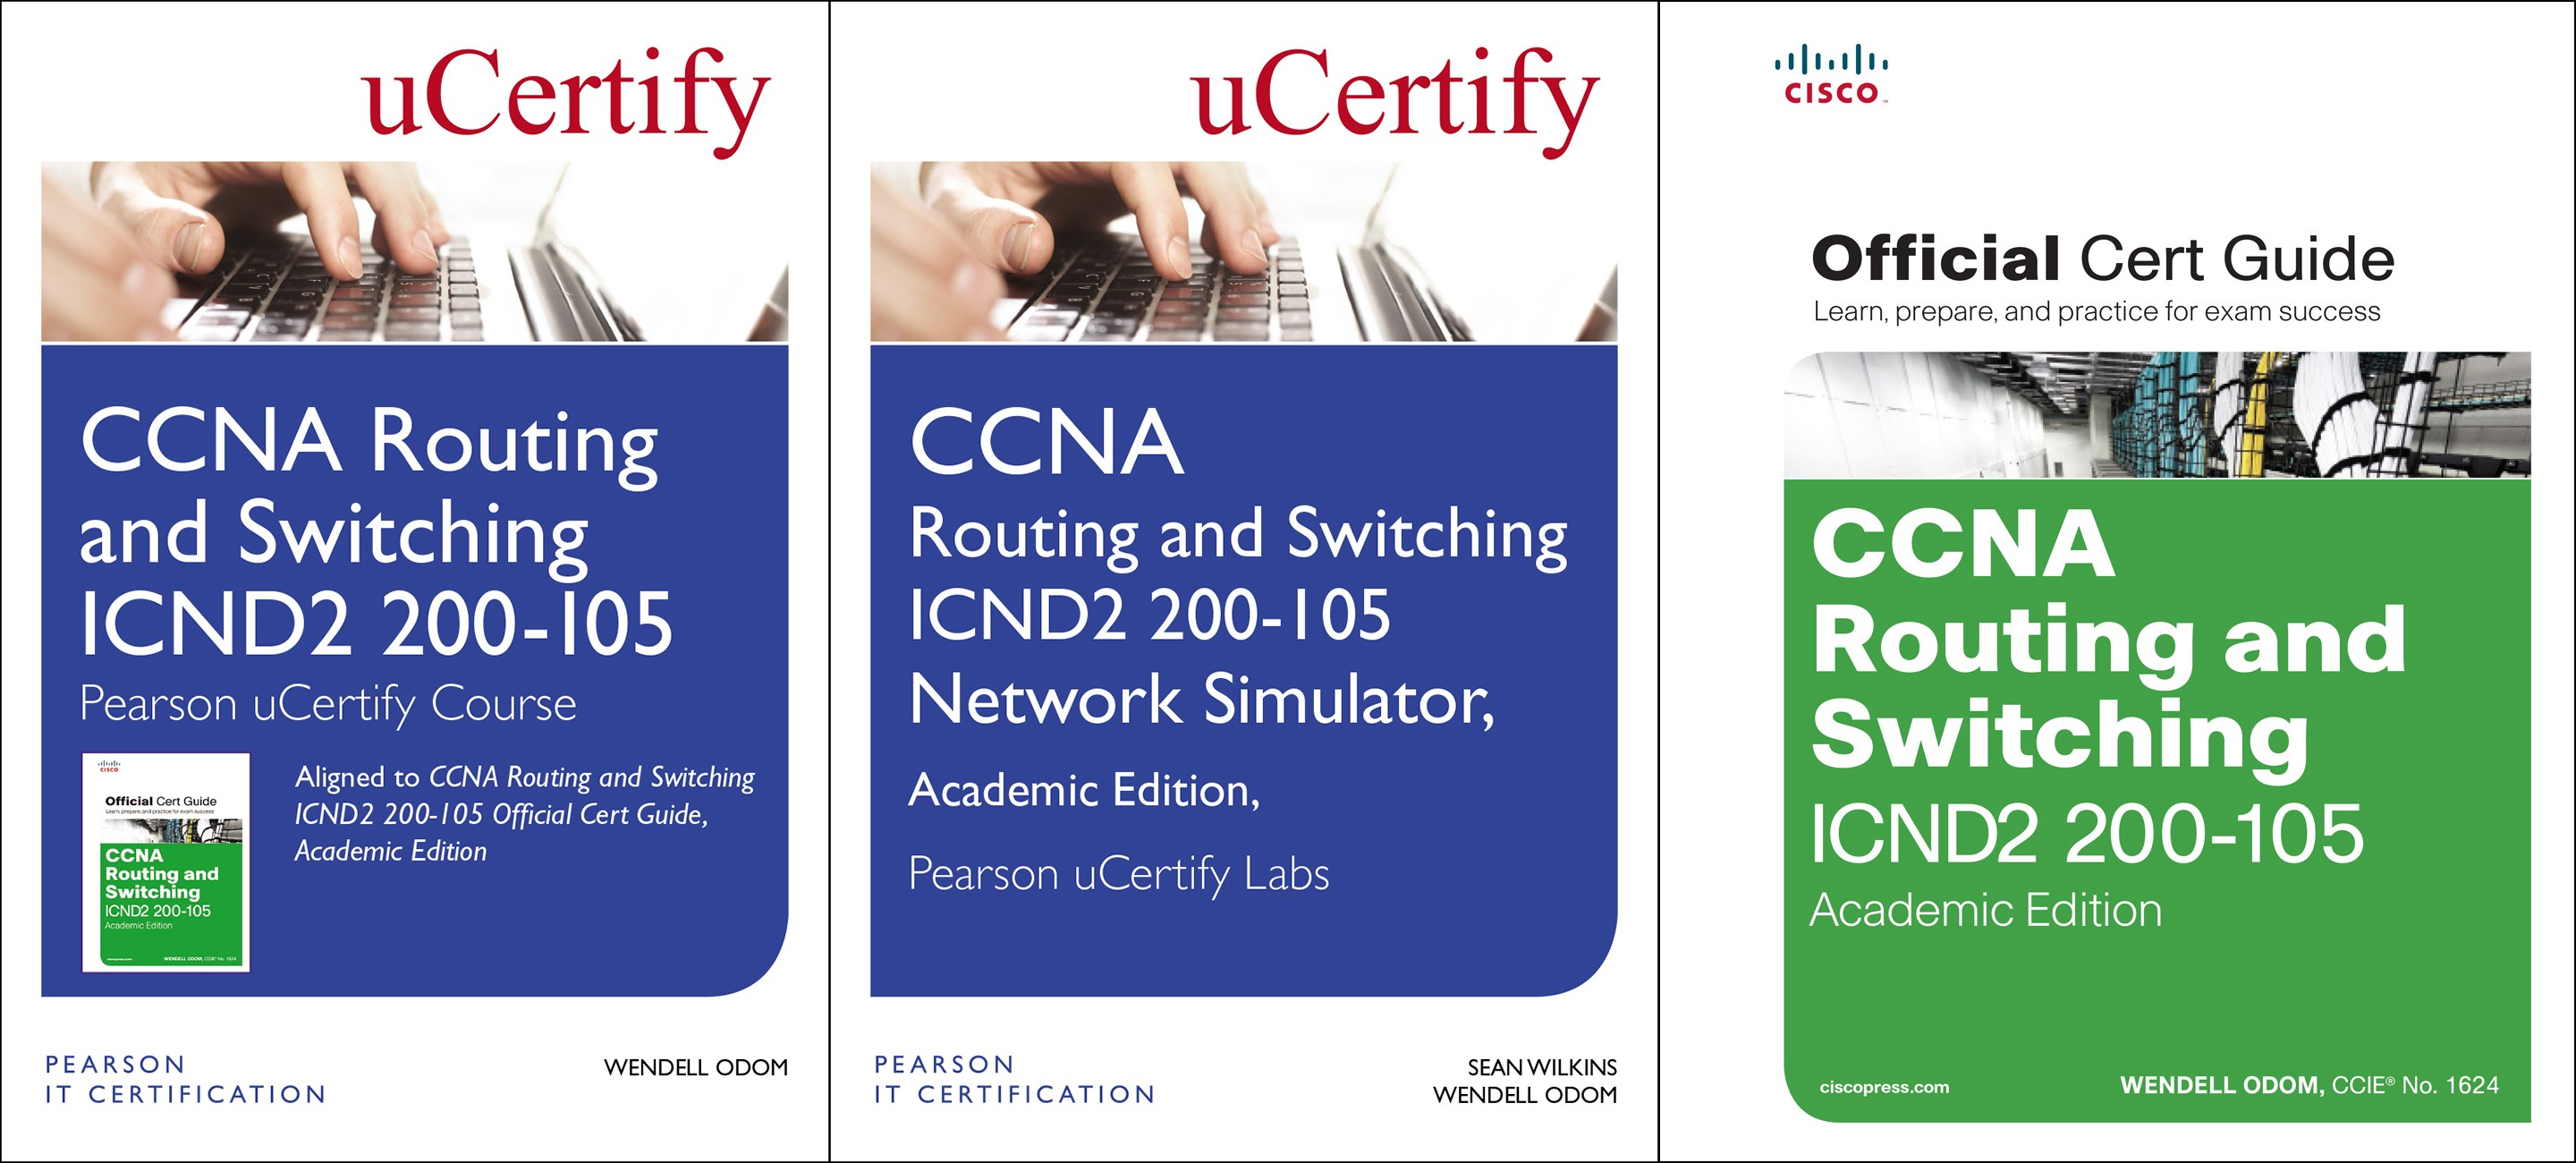 CCNA Routing and Switching ICND2 200-105 Pearson uCertify Course, Network Simulator, and Textbook Academic Edition Bundle